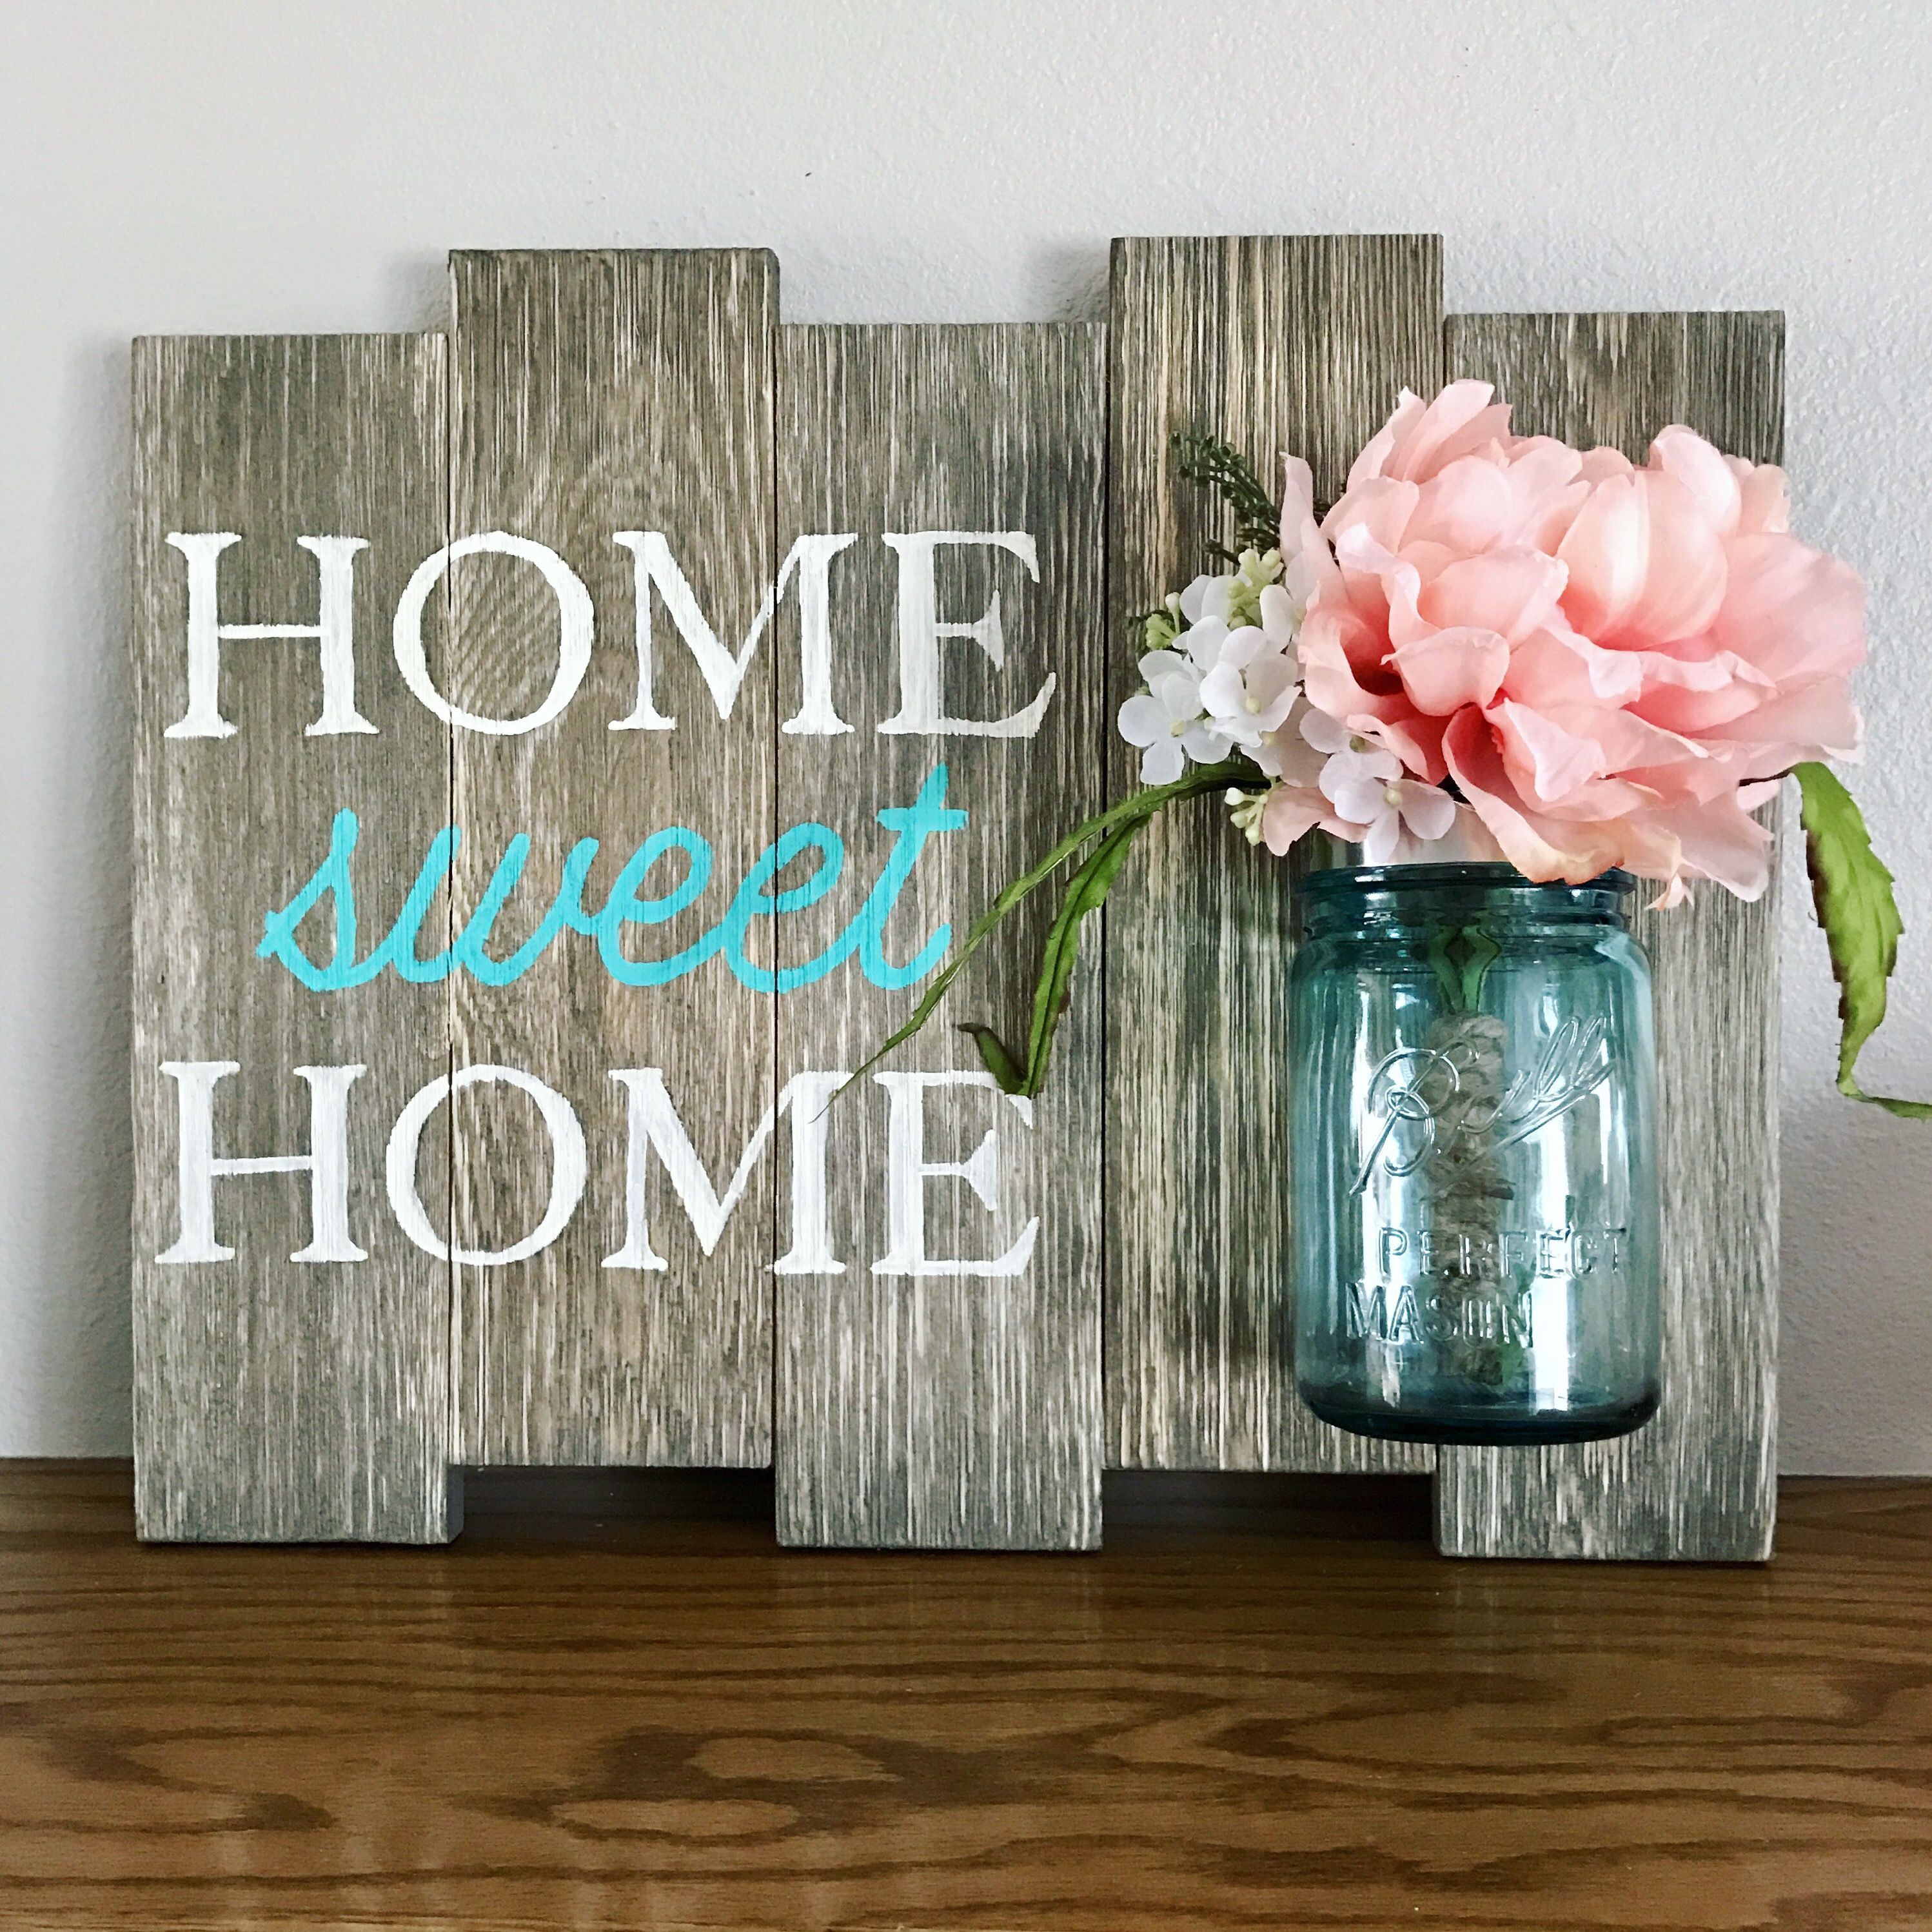 Home Sweet Home Vintage Ball Perfect Mason Jar Sign Rustic Home Decor